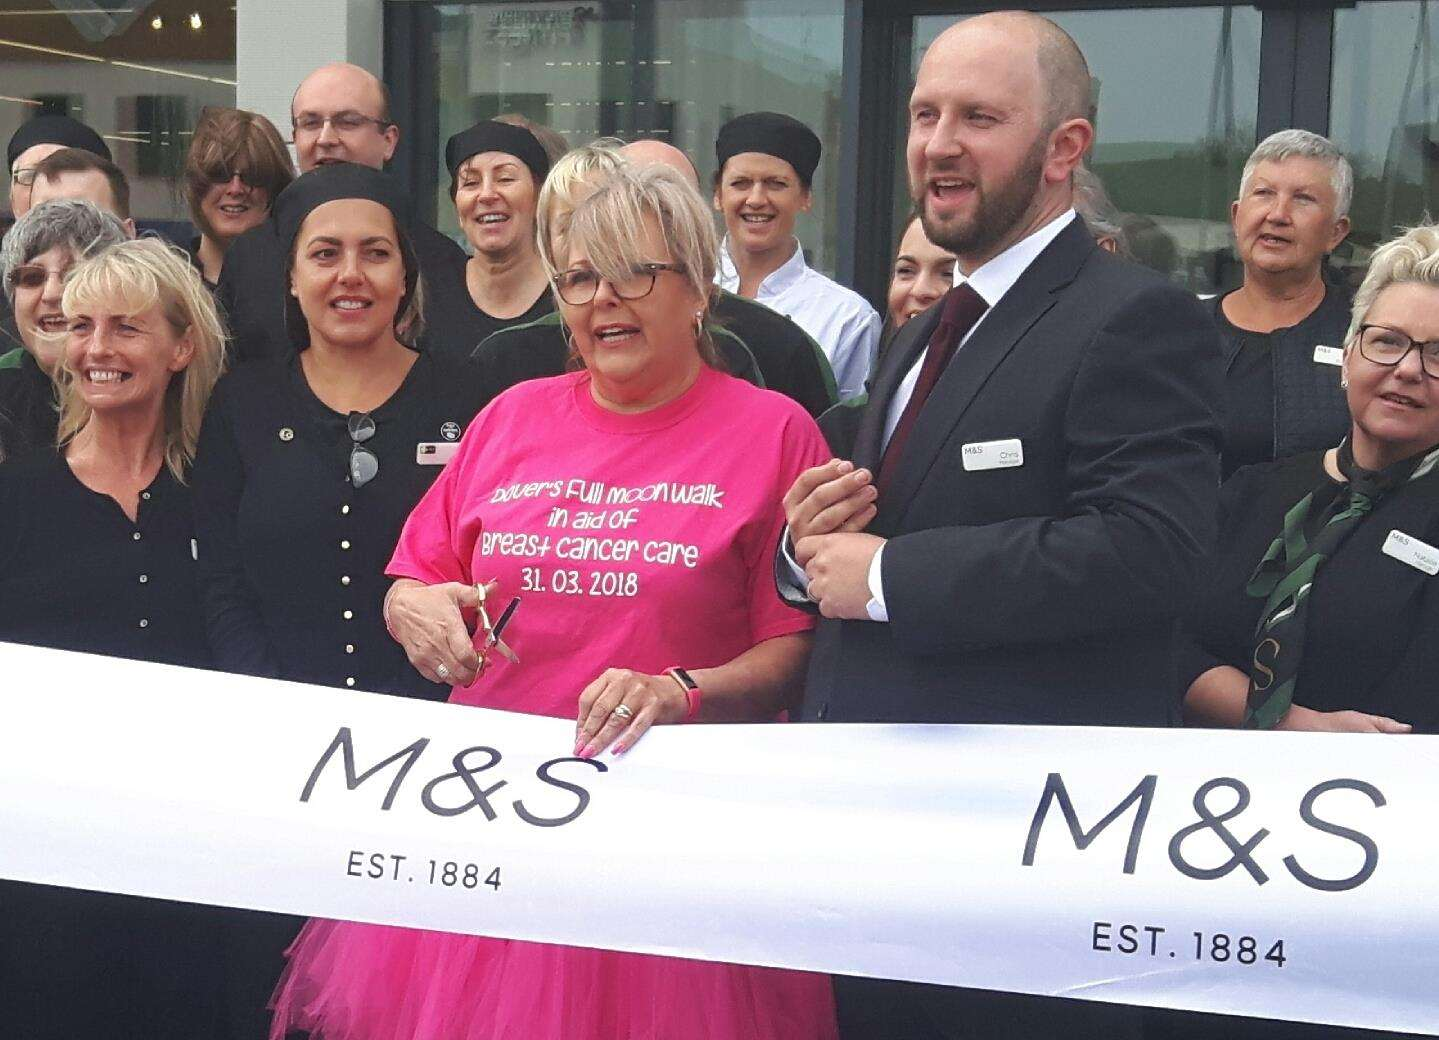 Cancer walk fundraiser Tracy Whiteaker and manager Chris Tallamy who opened the new Dover M&S Foodhall in May 2018